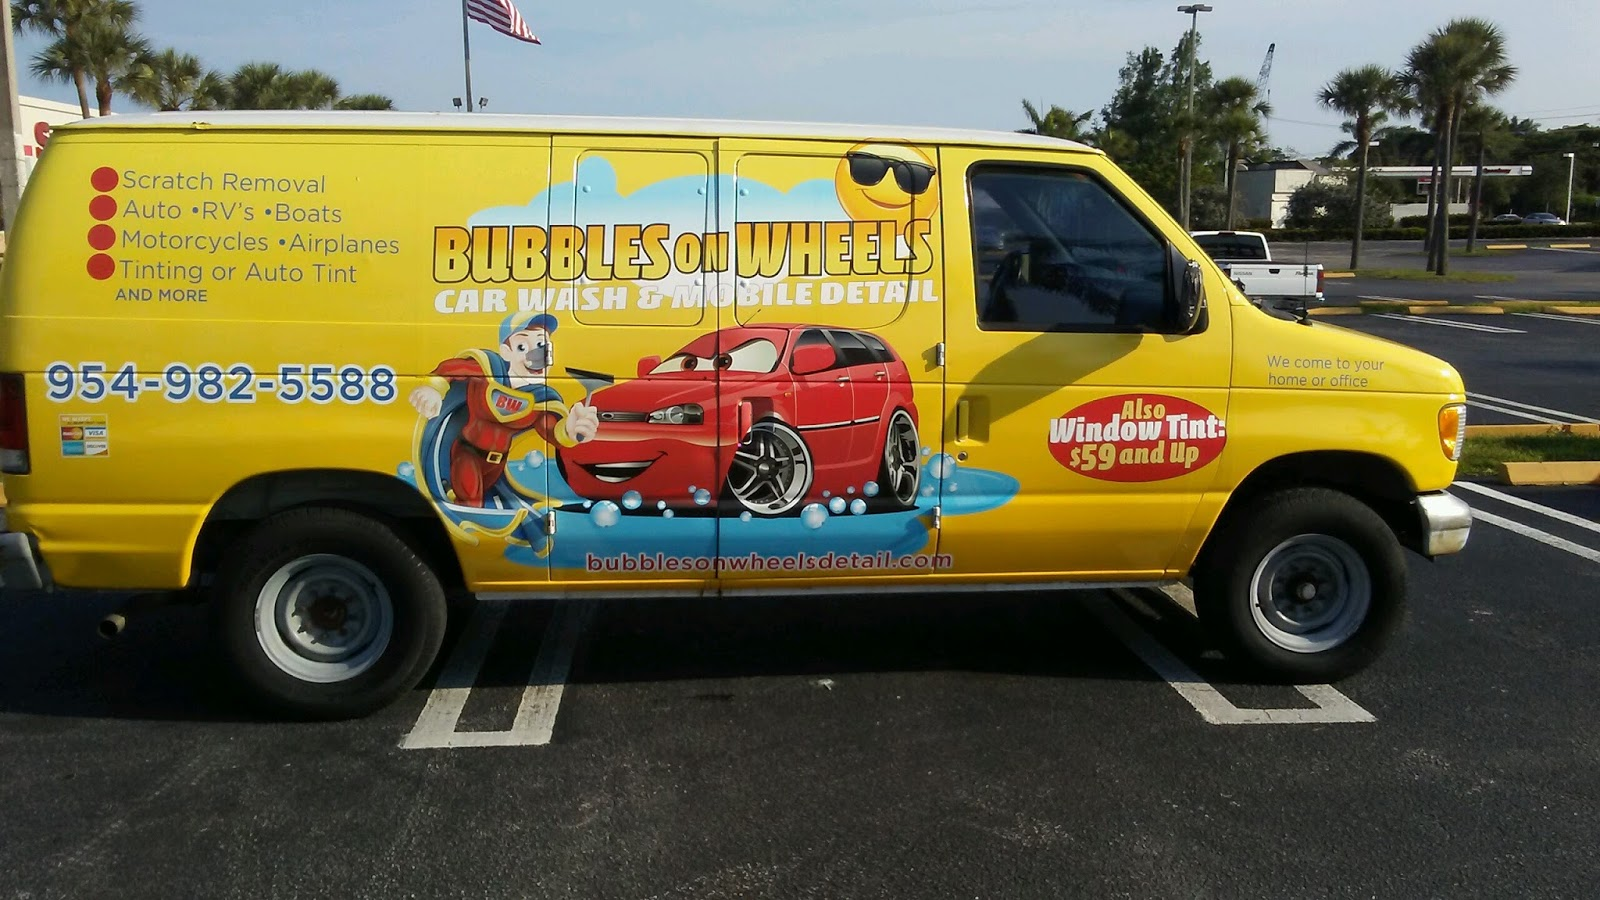 BUBBLES ON WHEELS CAR WASH, MOBILE CAR DETAIL - WE COME TO ...